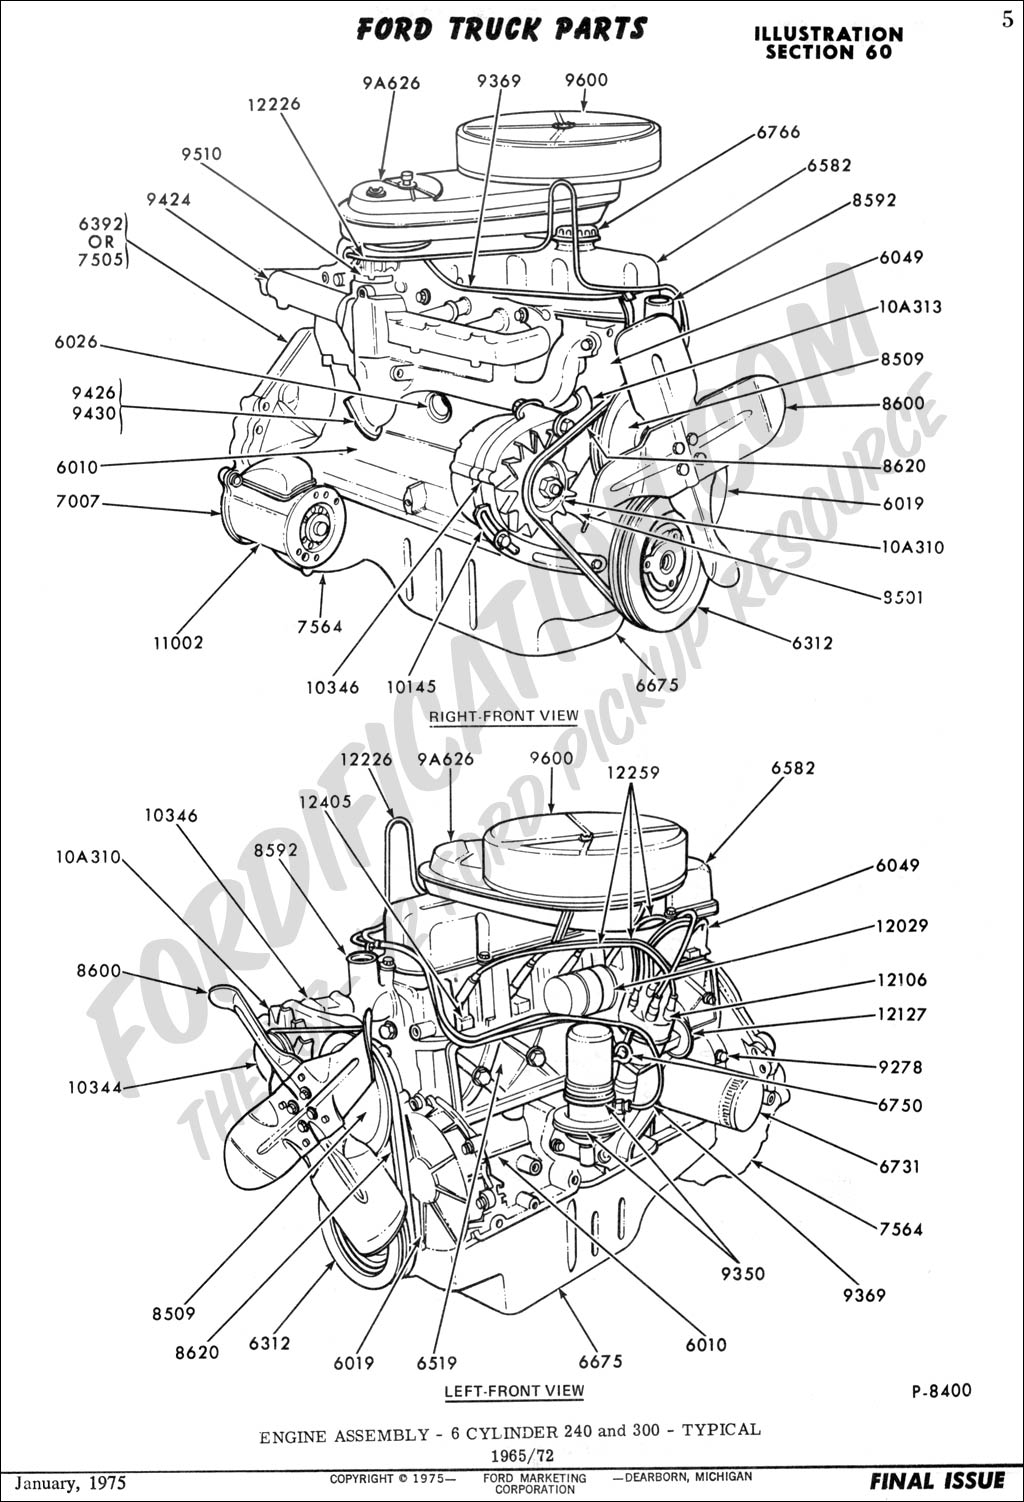 2001 ford mustang engine diagram Images Gallery